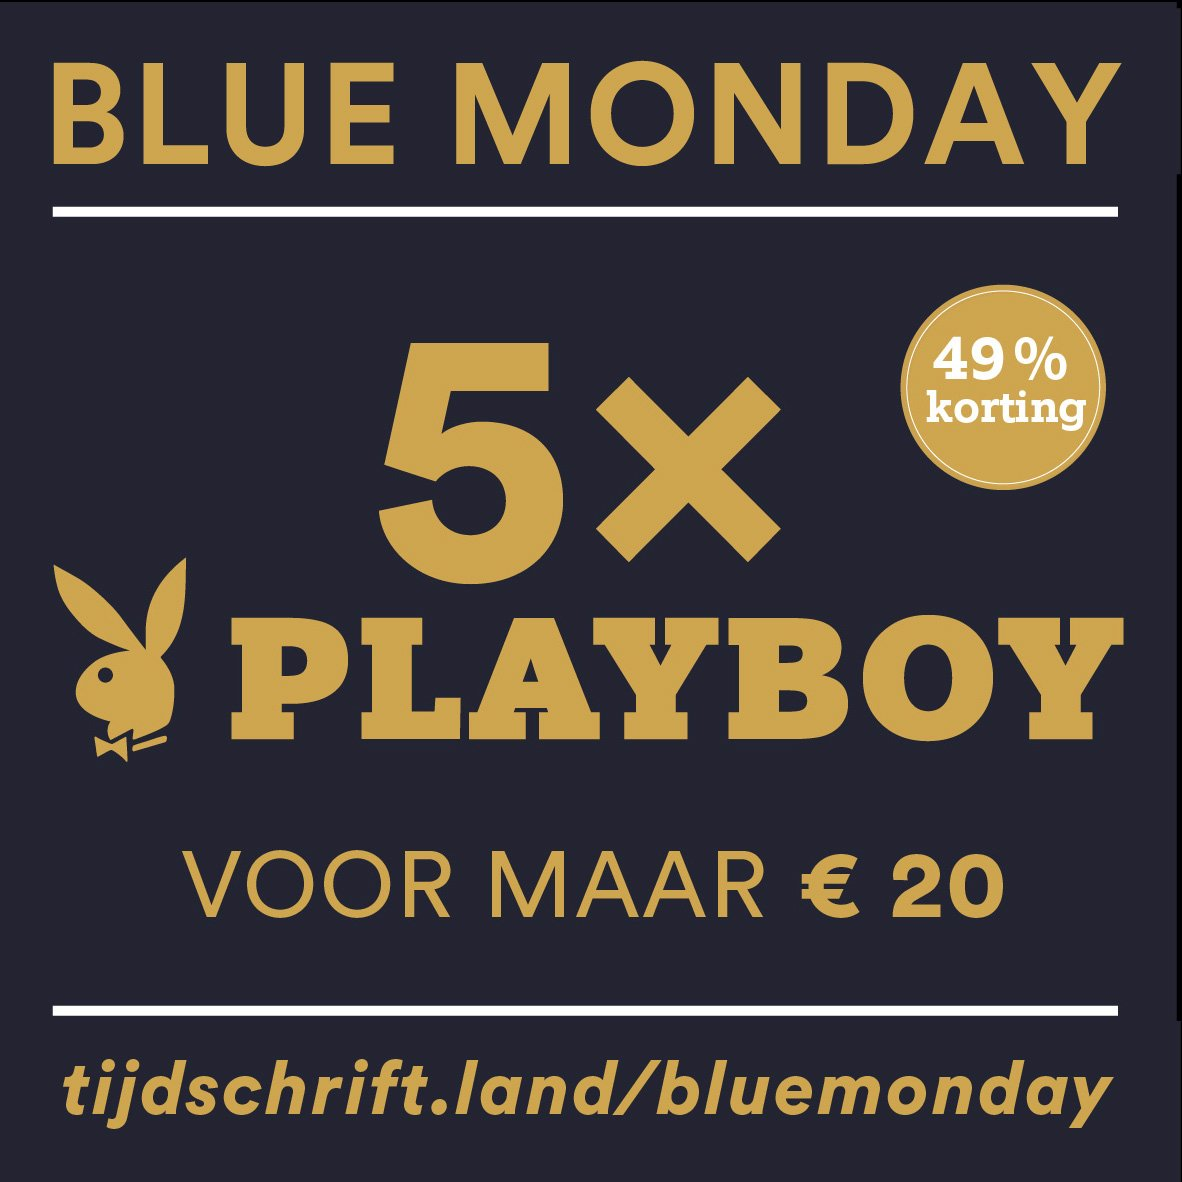 #bluemonday #korting #playboy https://t.co/h9202vOoHy